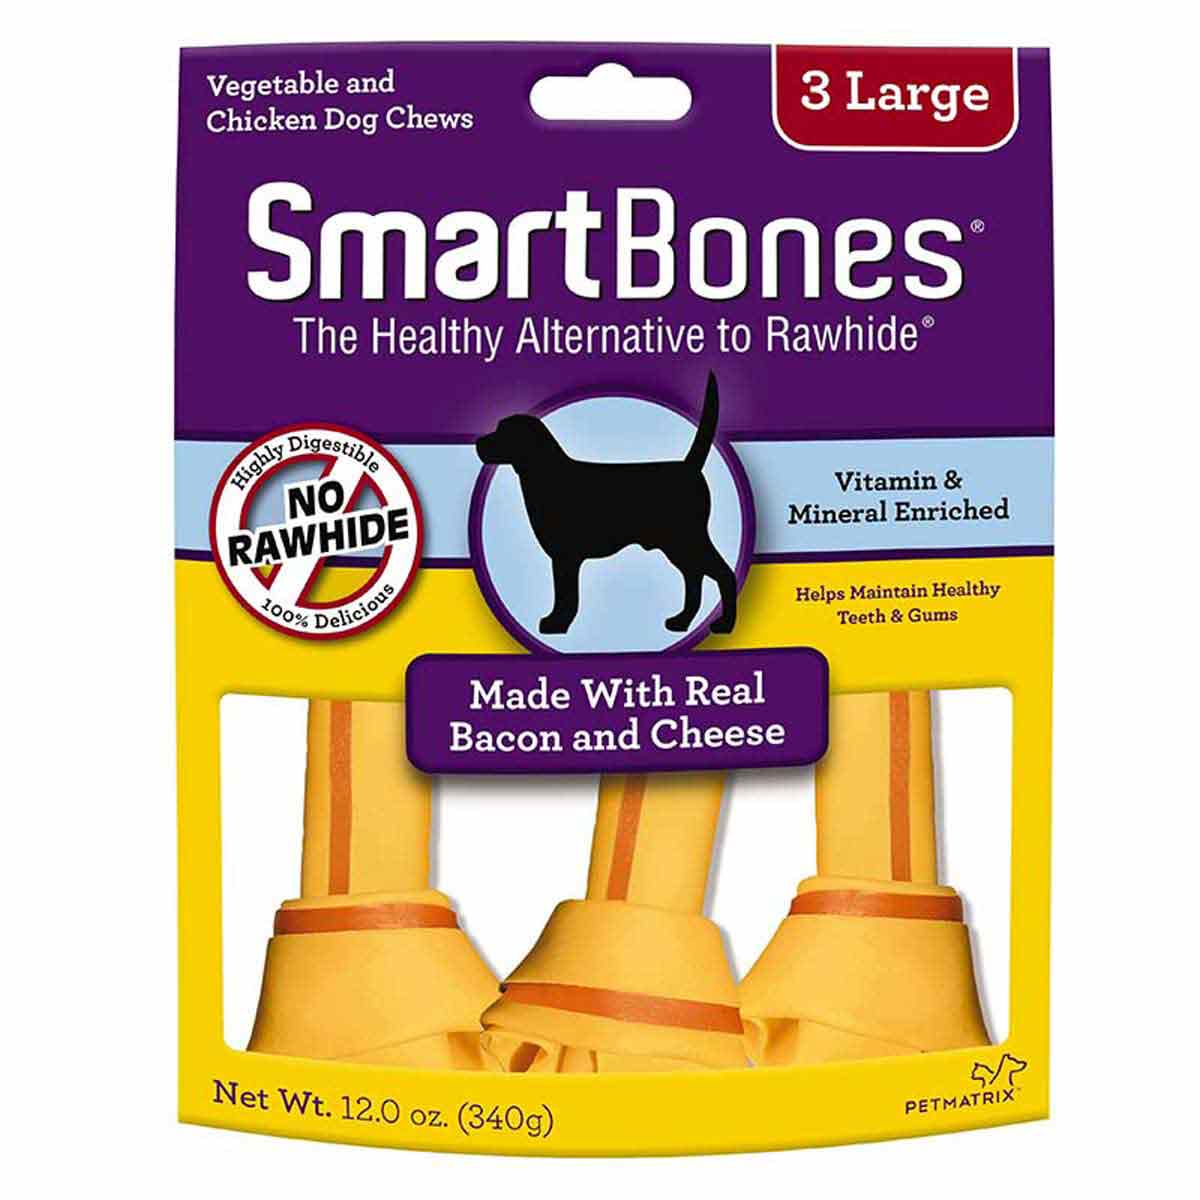 Large SmartBones Bacon and Cheese 3 Pack Dog Chews available at Ryan's Pet Supplies